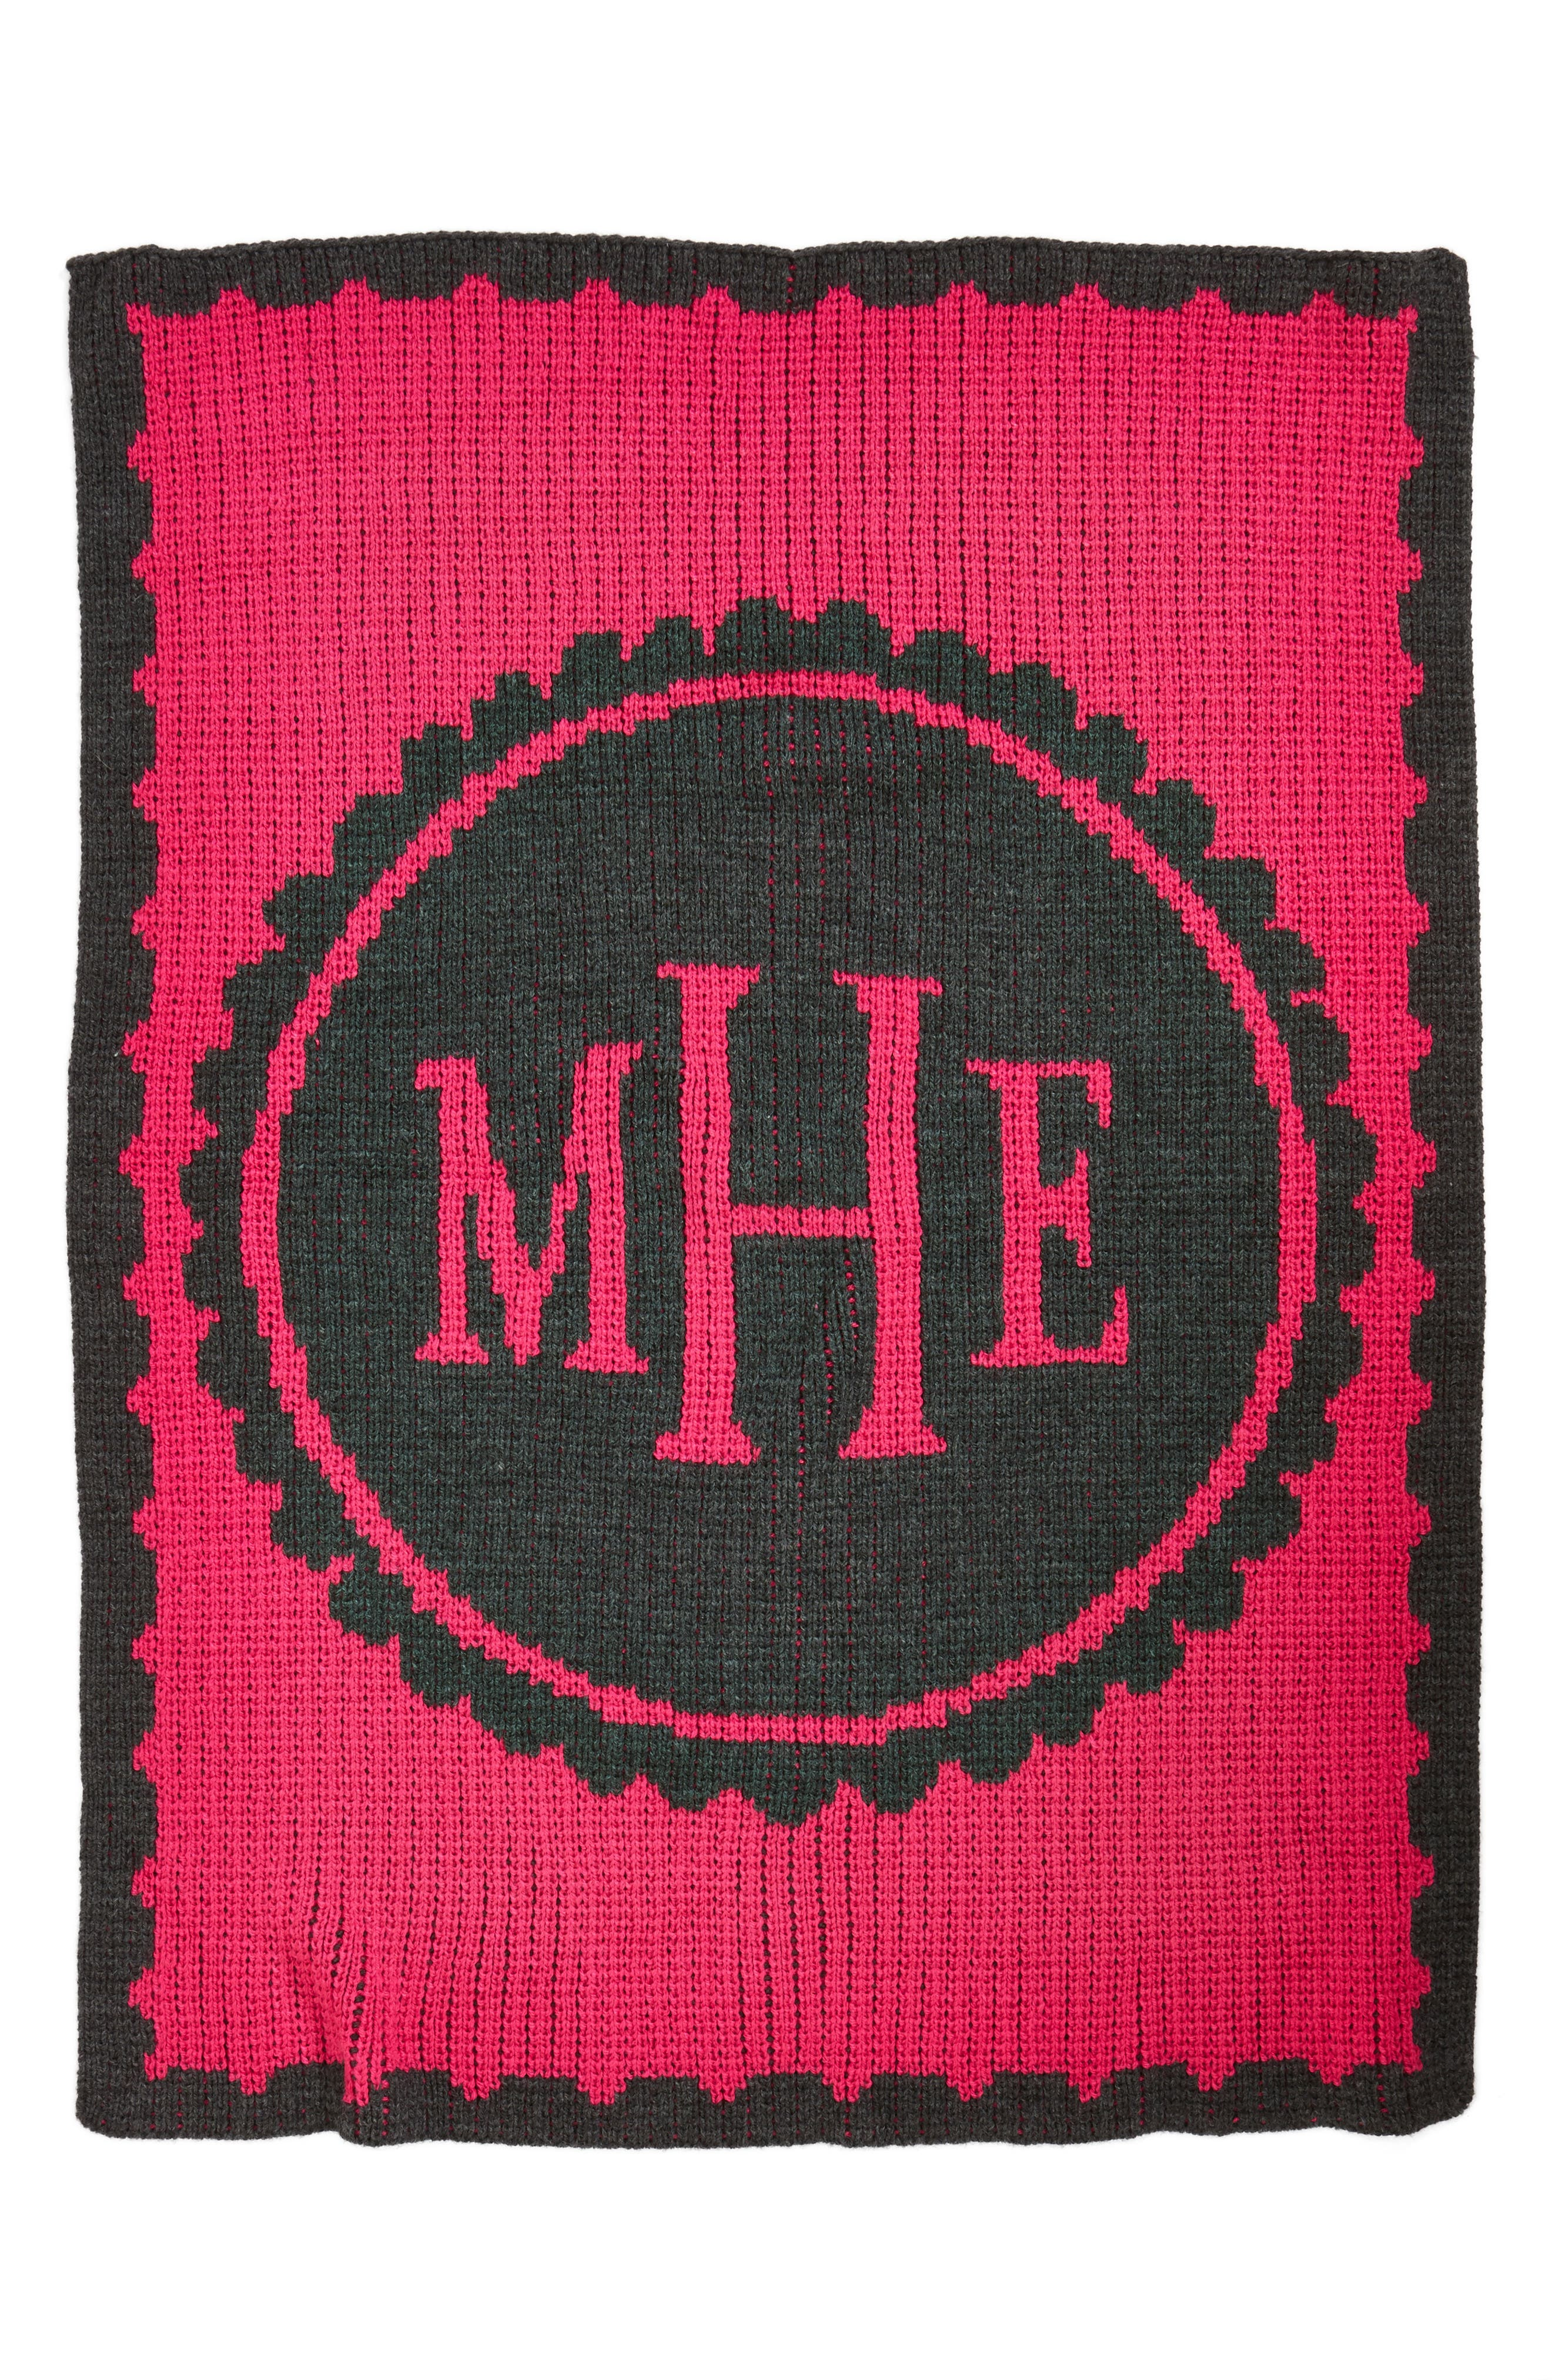 'Scalloped - Large' Personalized Blanket,                             Alternate thumbnail 2, color,                             FUCHSIA/ CHARCOAL GREY